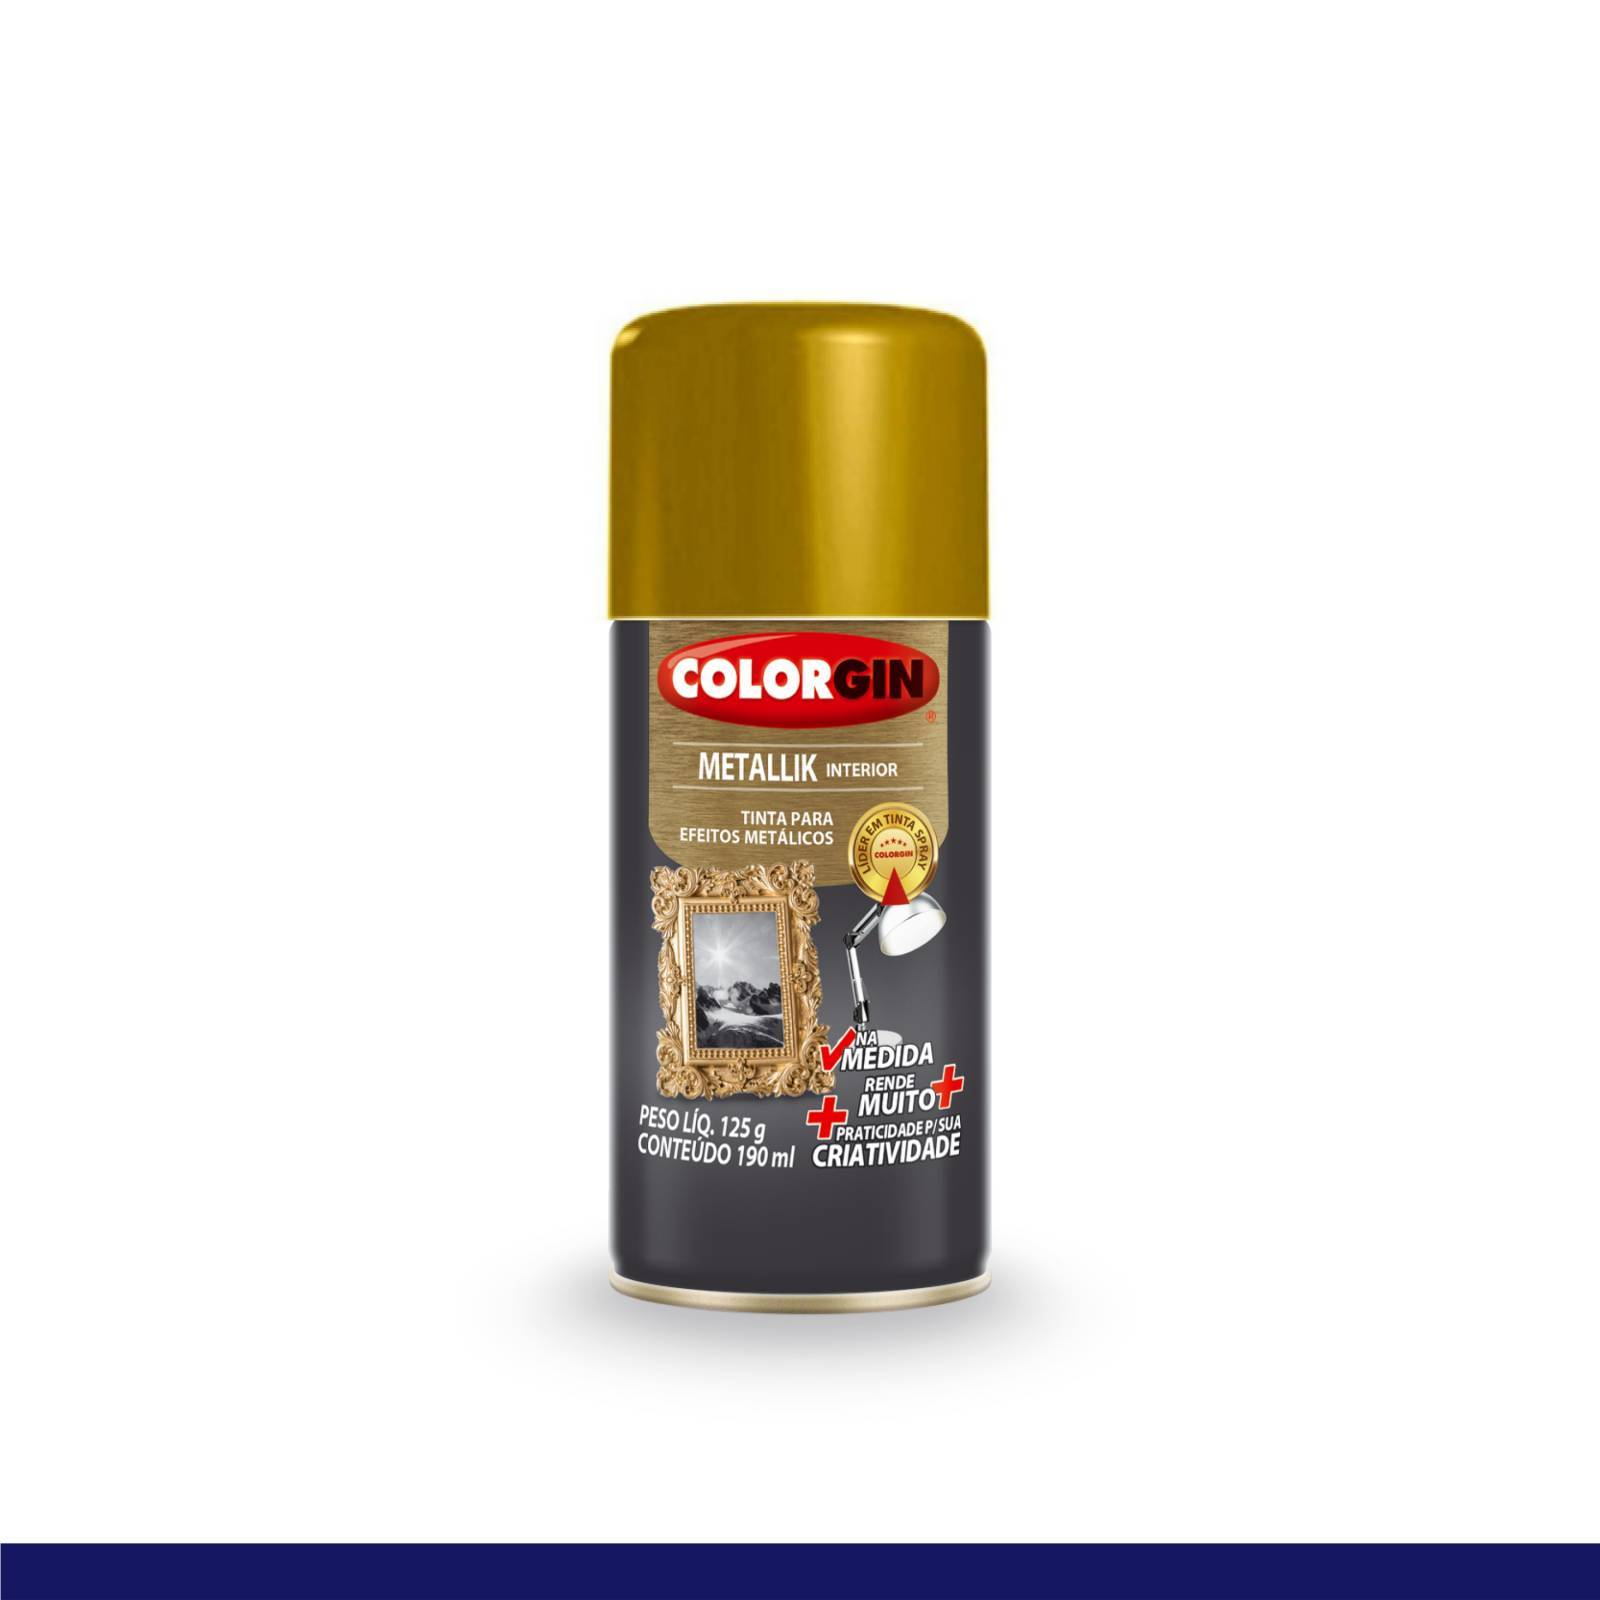 Tinta Spray Colorgin Metallik Ouro 552 Na Medida 190ml - Mundo Graffiti